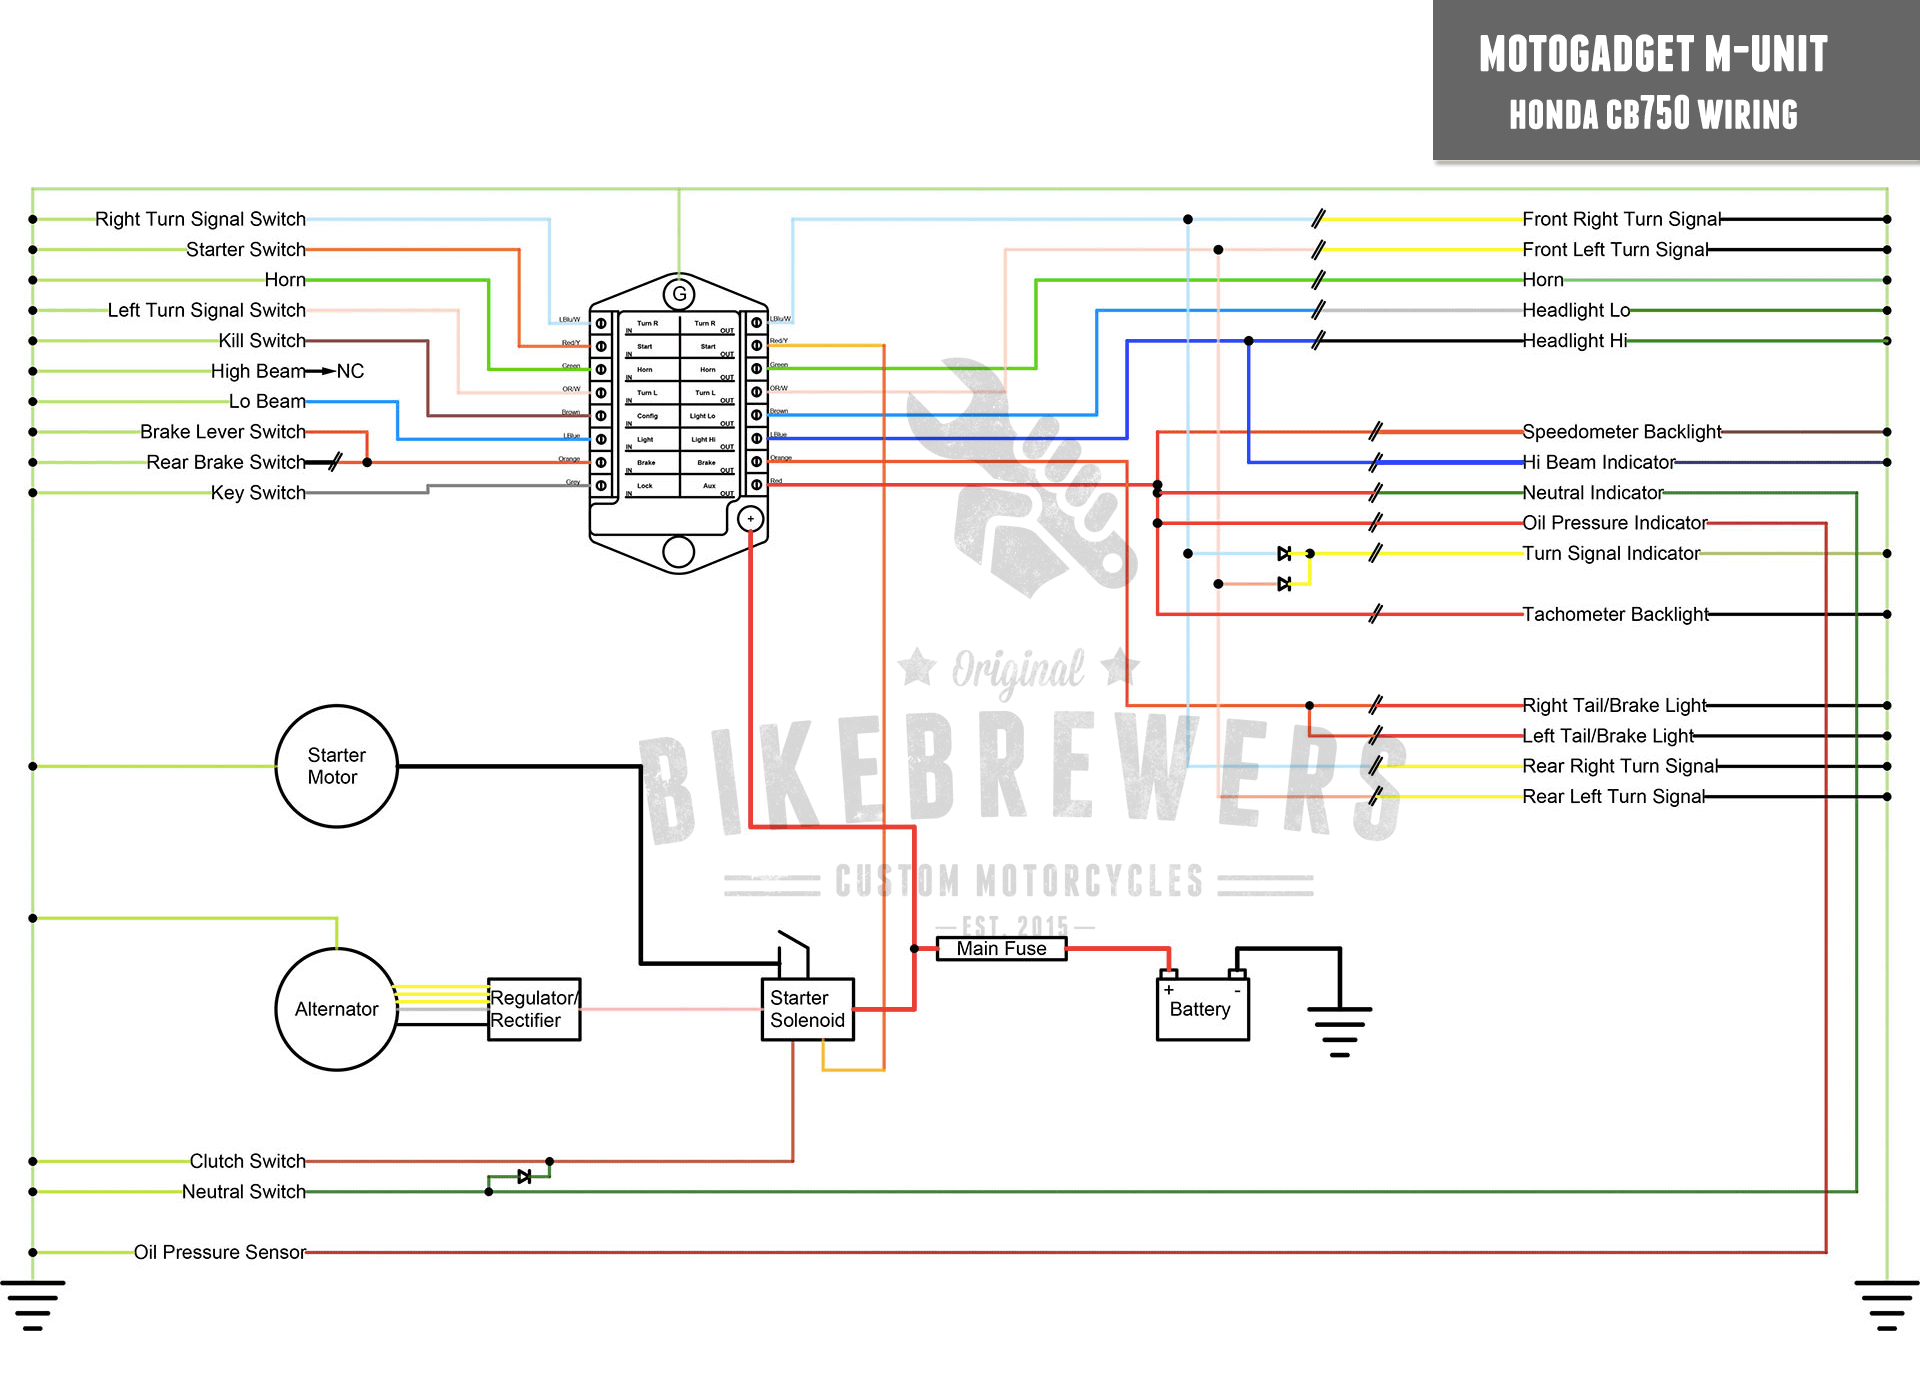 Cb550 Wiring Diagram Simplified in addition 1976 Cb 750 Wiring Diagram additionally Honda Cb650 Cafe Racer together with 1971 Kawasaki 90cc Wiring Diagram as well Cb750k. on 1974 honda cb750 wiring diagram